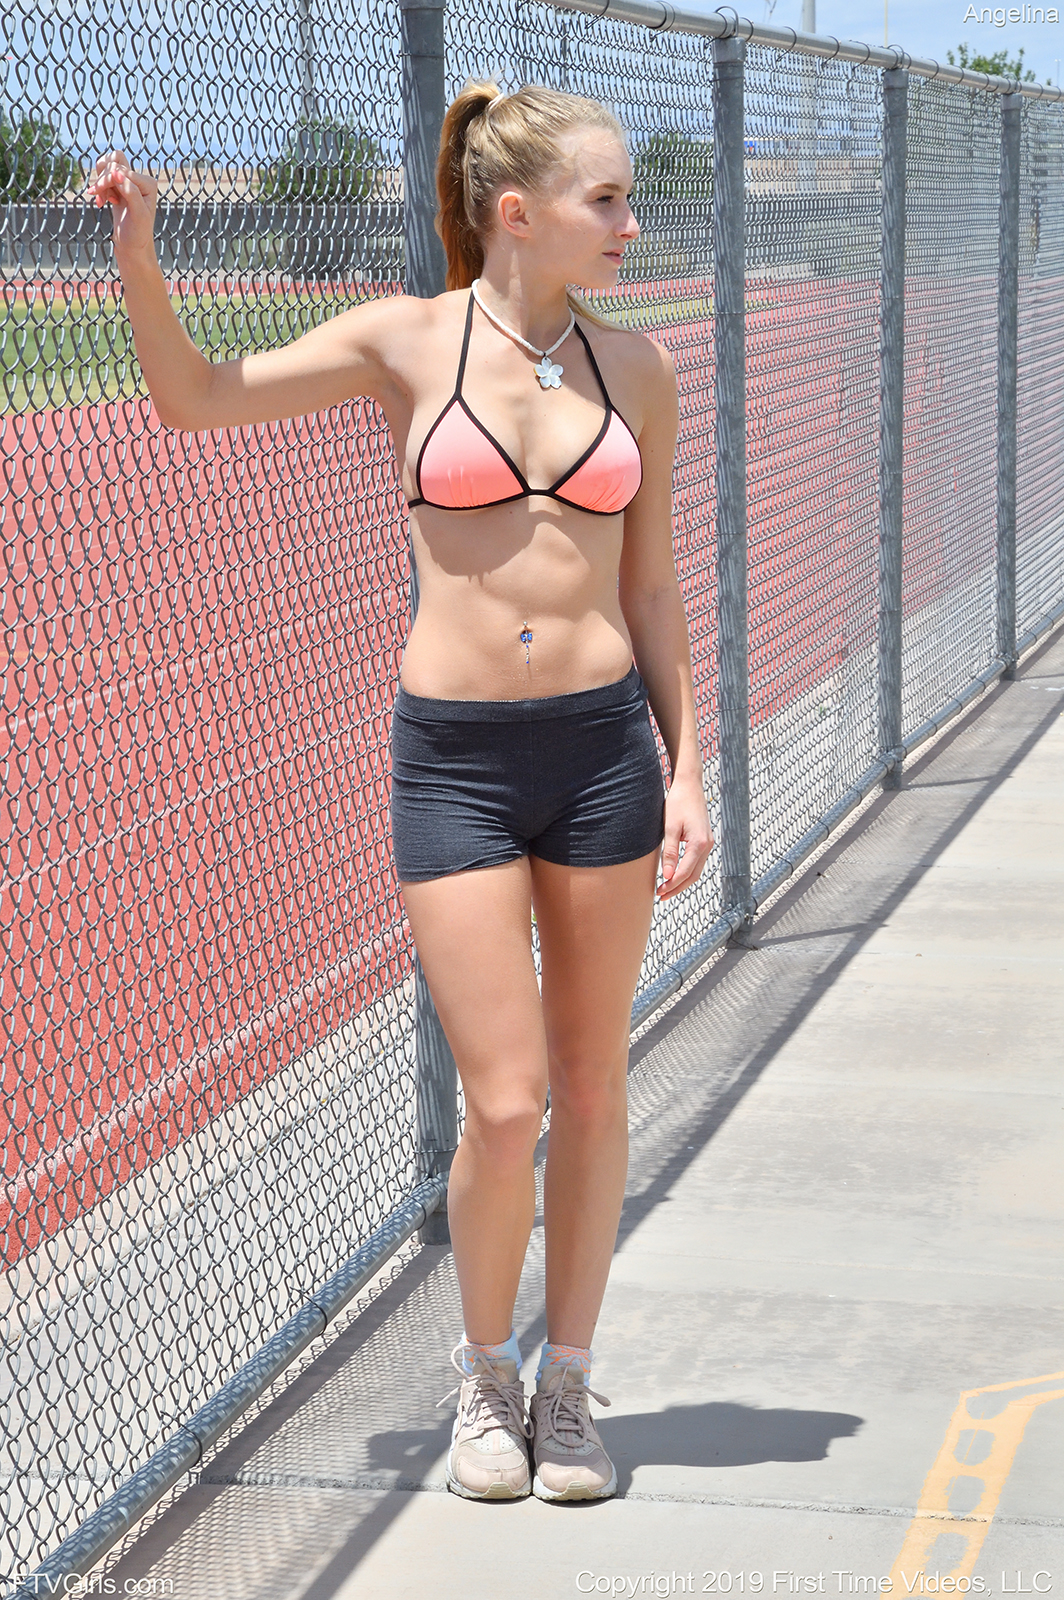 Sporty playful hottie Angelina flashing her tits and ass in public